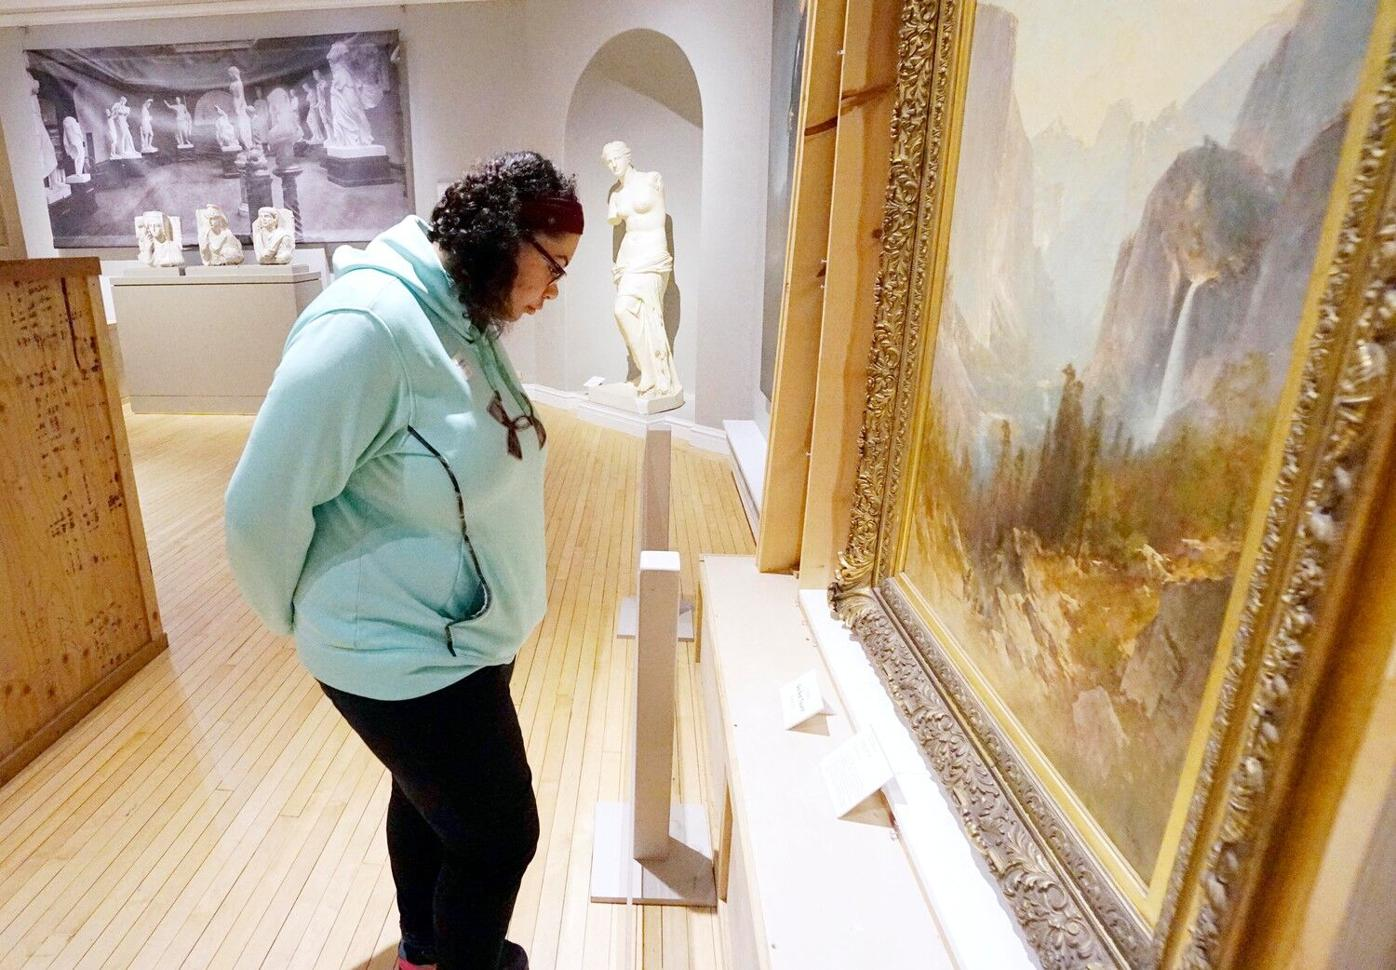 SJC ruling clears Berkshire Museum to sell artworks